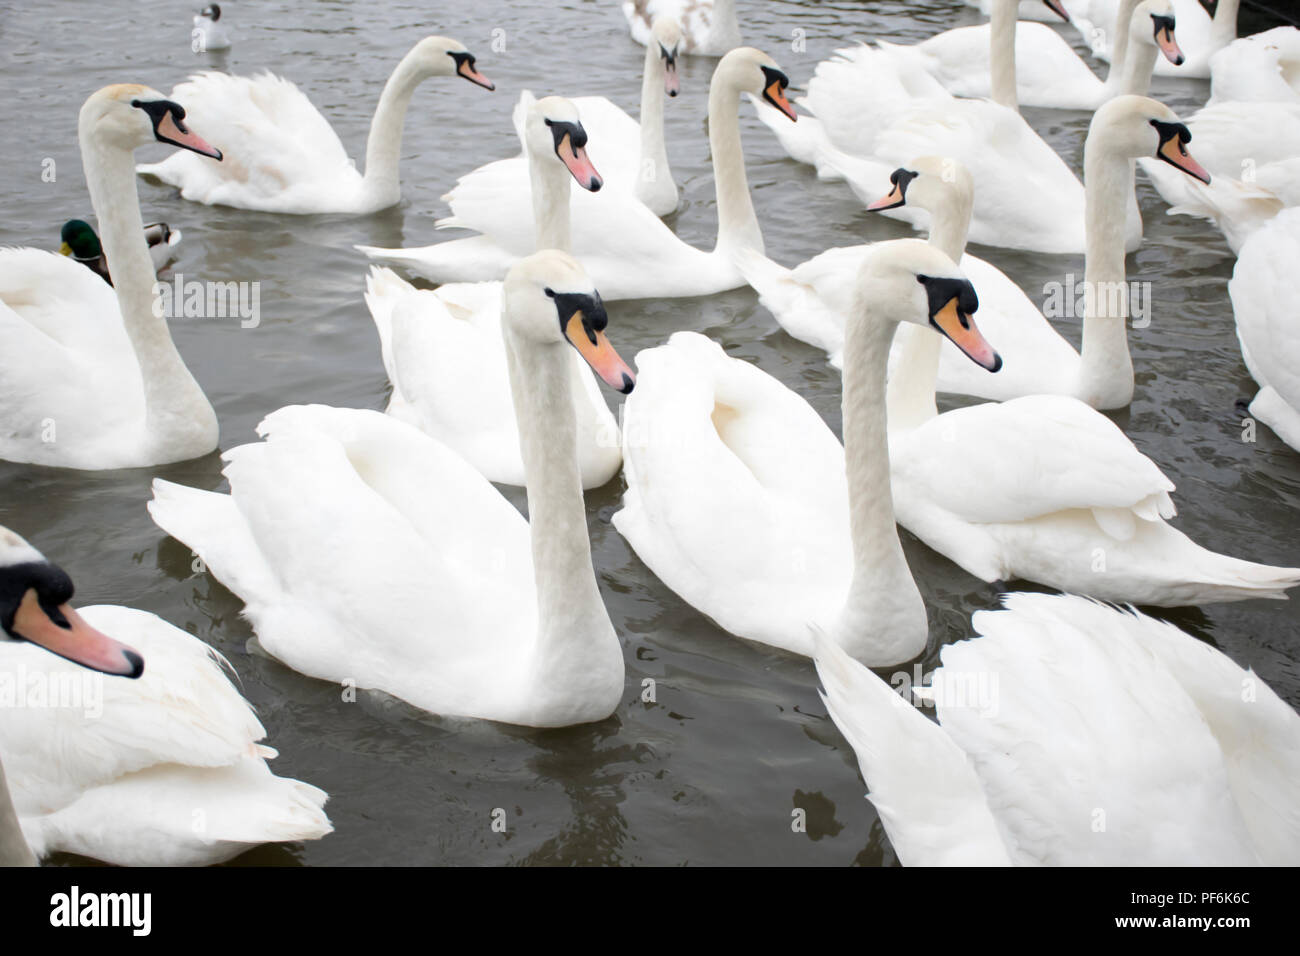 a bevy of swans gathering in a lake awaiting for food Stock Photo